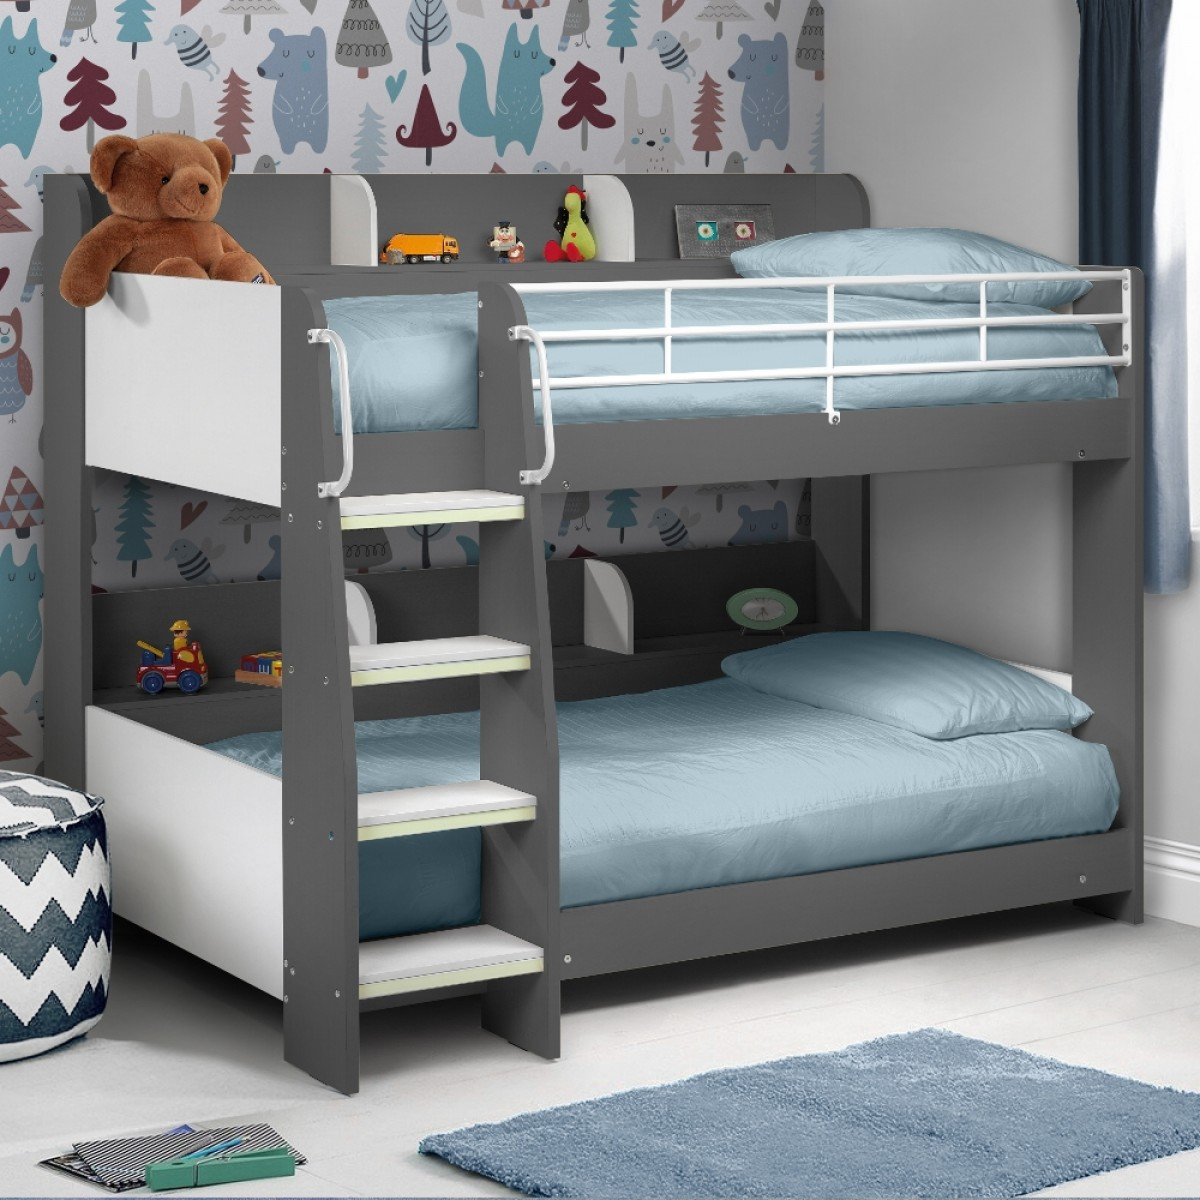 Single Beds For Kids Domino Grey Wooden And Metal Kids Storage Bunk Bed